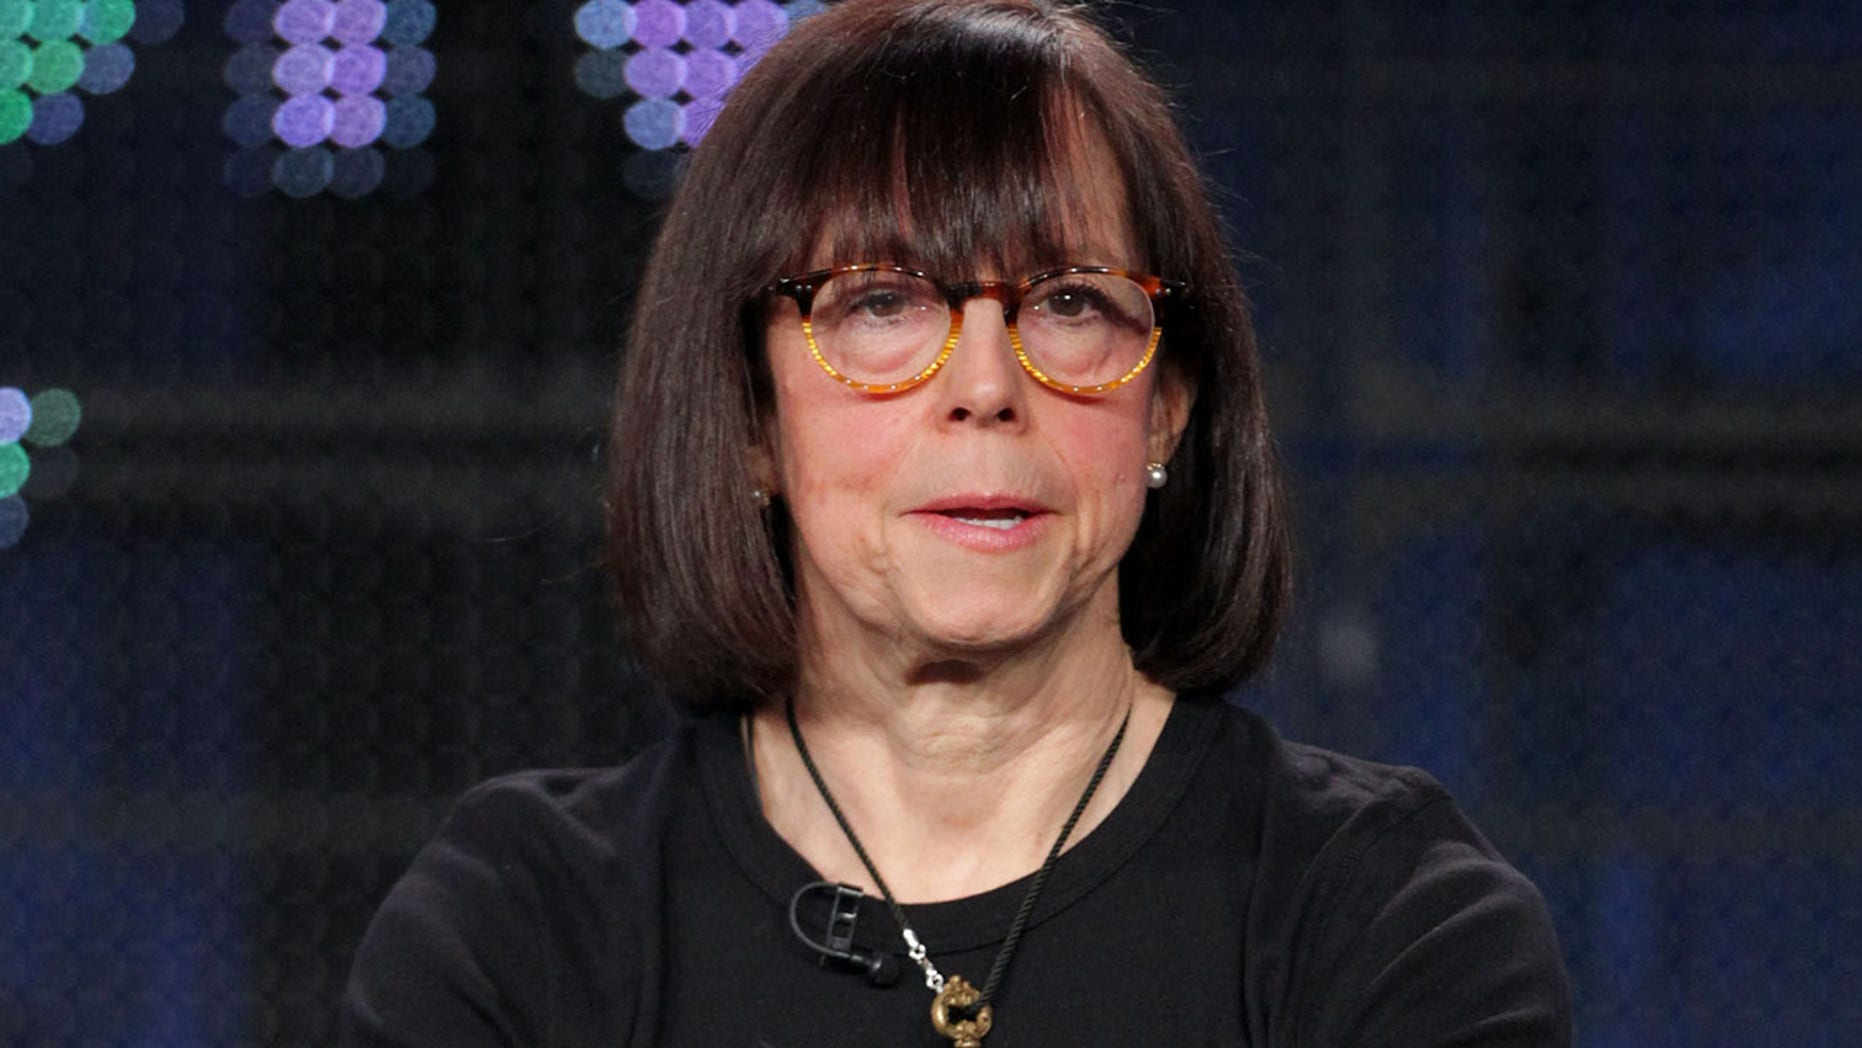 FILE 2011: News executive producer Susan Zirinsky speaks onstage during the 'The Injustice Files' panel in Pasadena, California. (Photo by Frederick M. Brown/Getty Images)